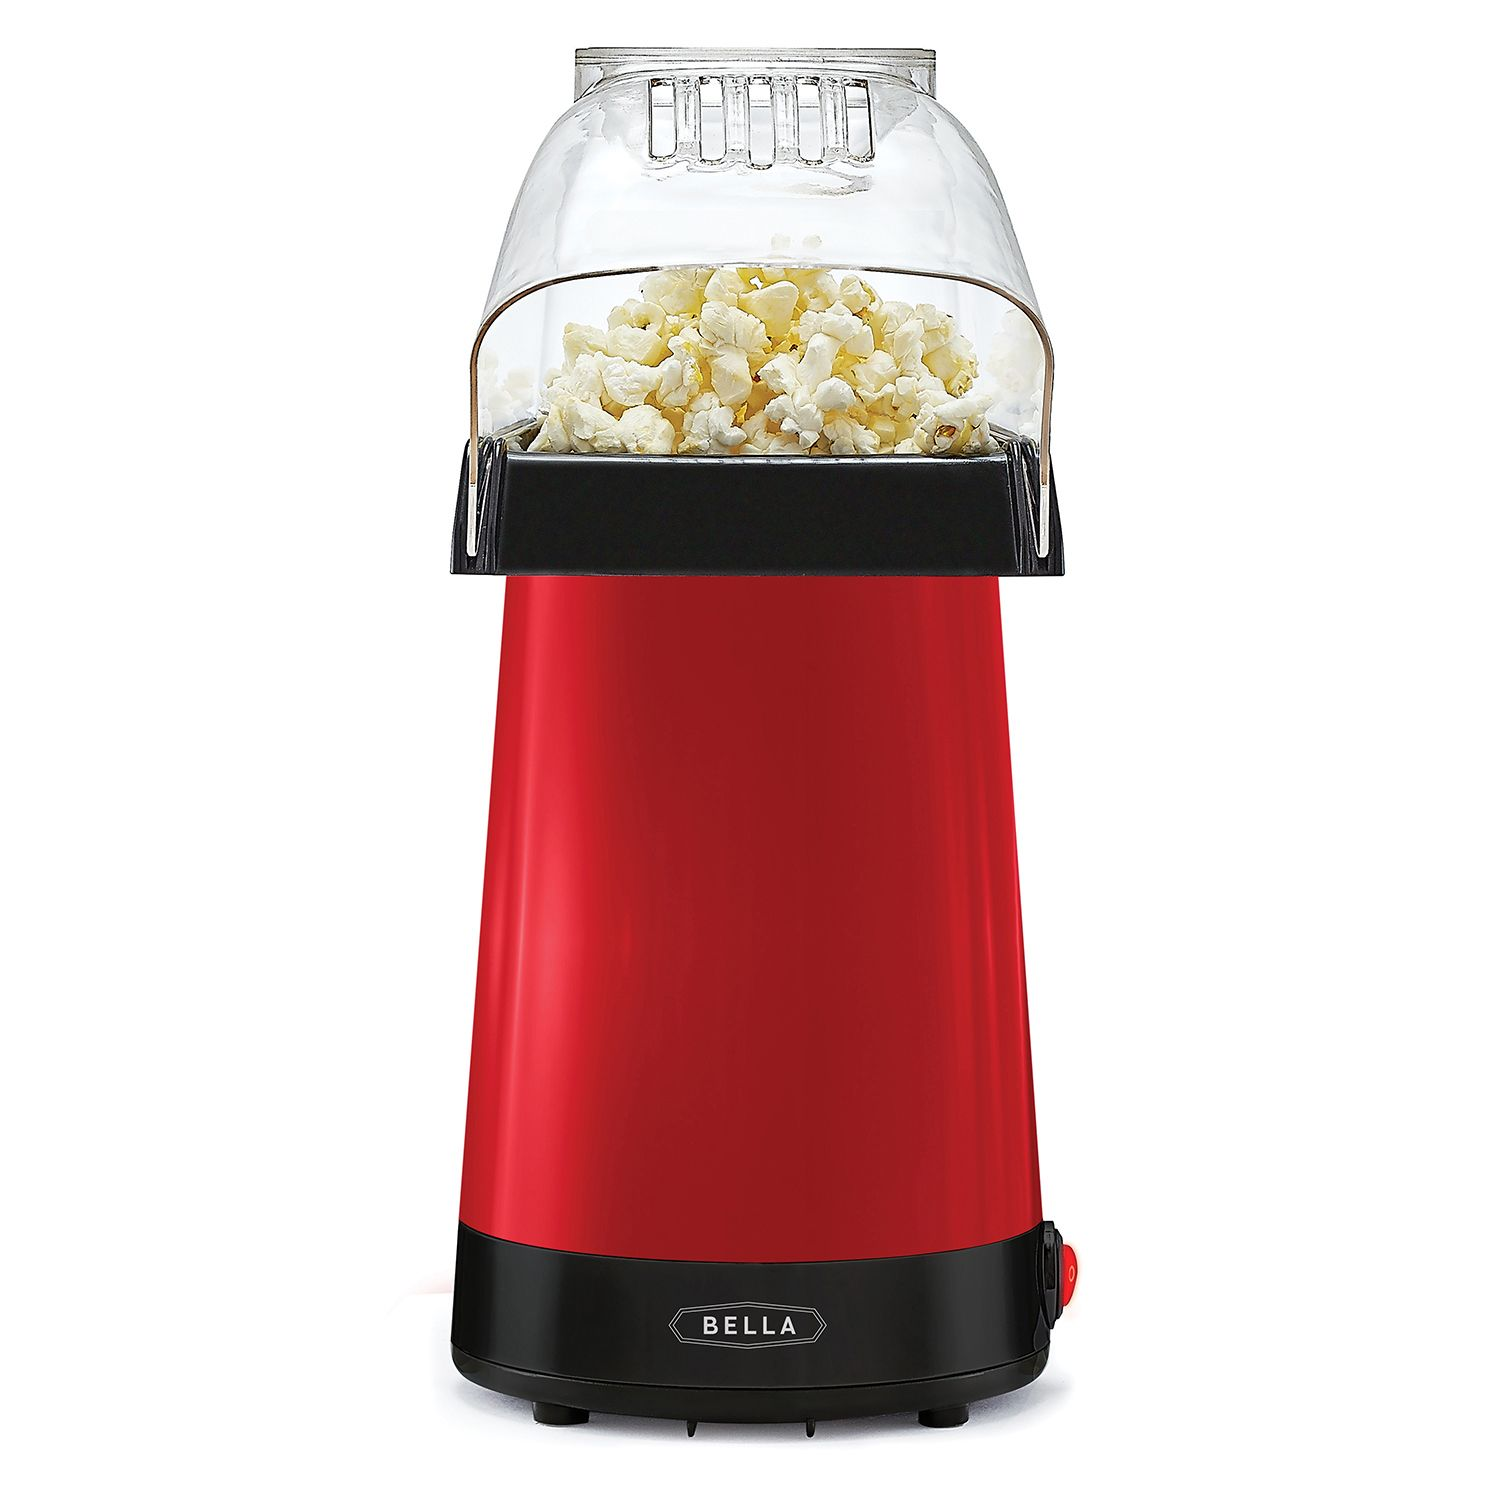 superb Bella Small Kitchen Appliances #7: Bella Hot Air Popcorn Maker